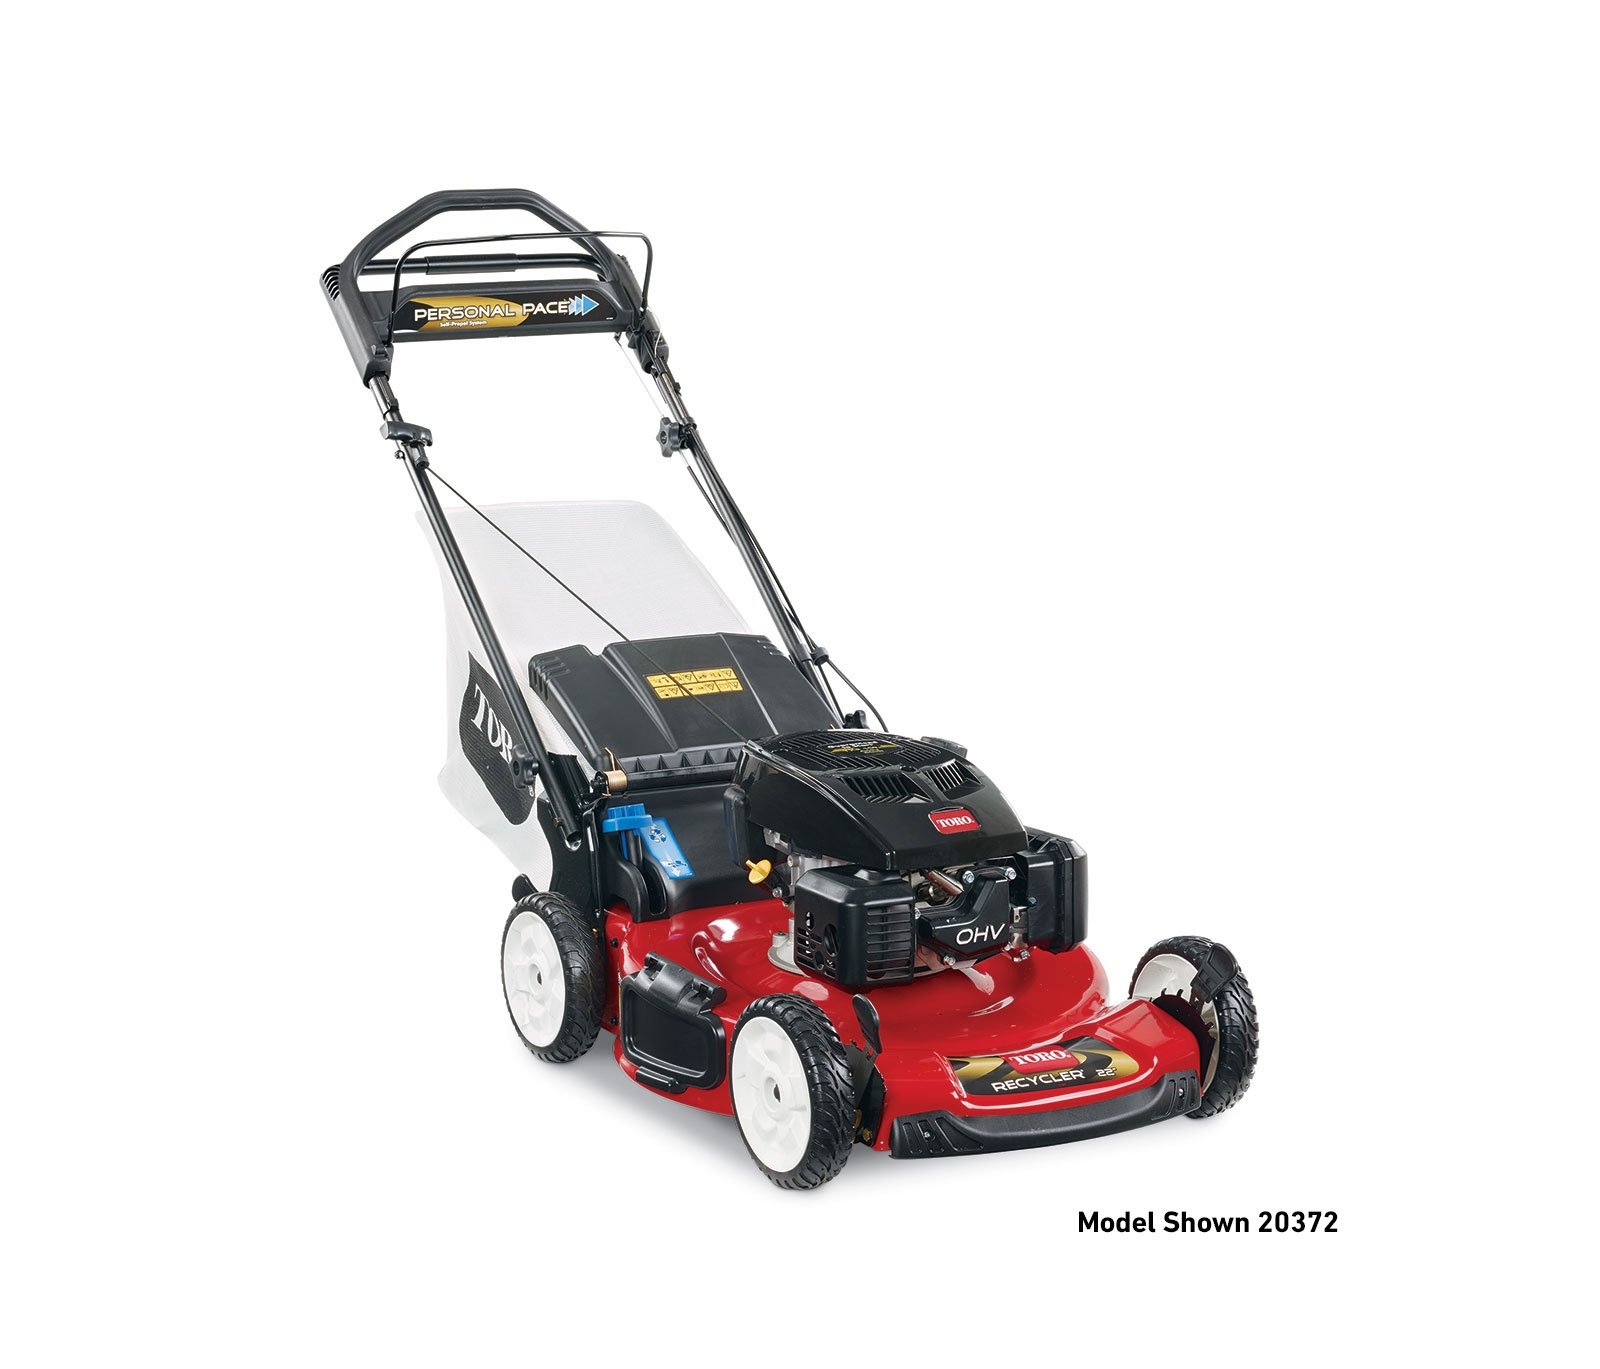 toro 22 56cm personal pace electric start lawn mower rh toro com toro personal pace mower parts list toro personal pace mower parts diagram